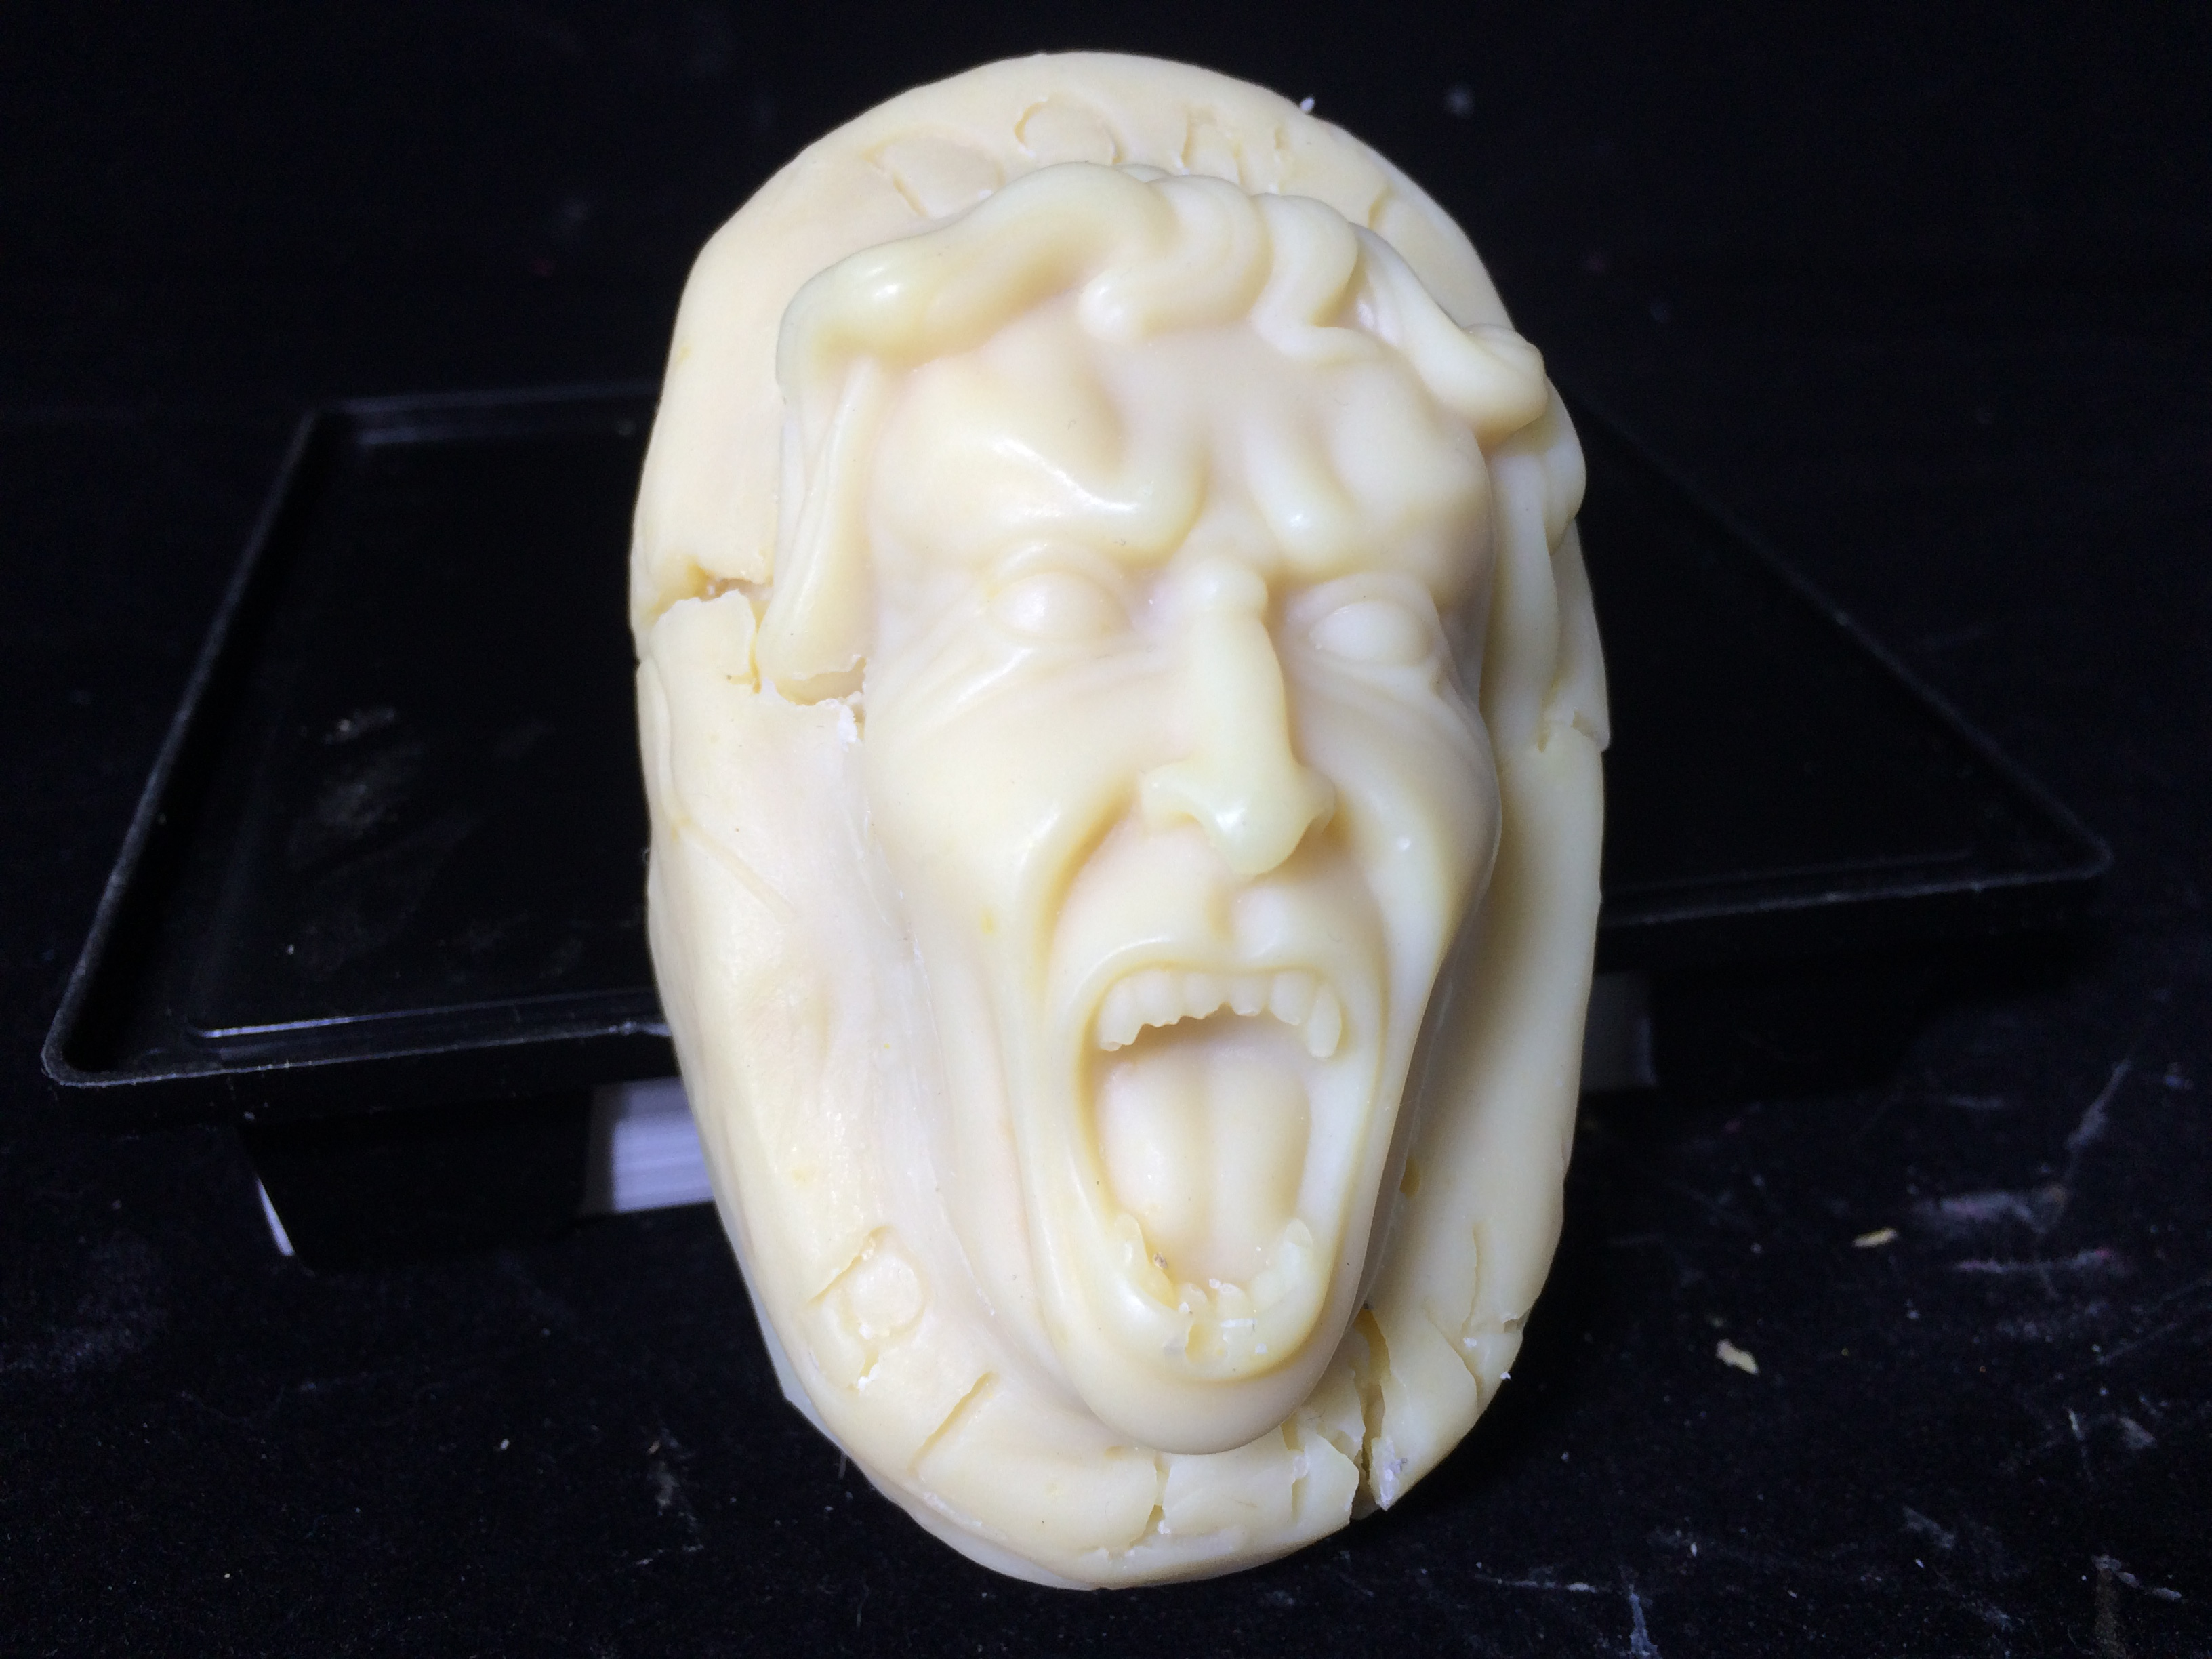 peppermint and Tea Tree weeping angel goat milk soappeppermint and Tea Tree weeping angel goat milk soap